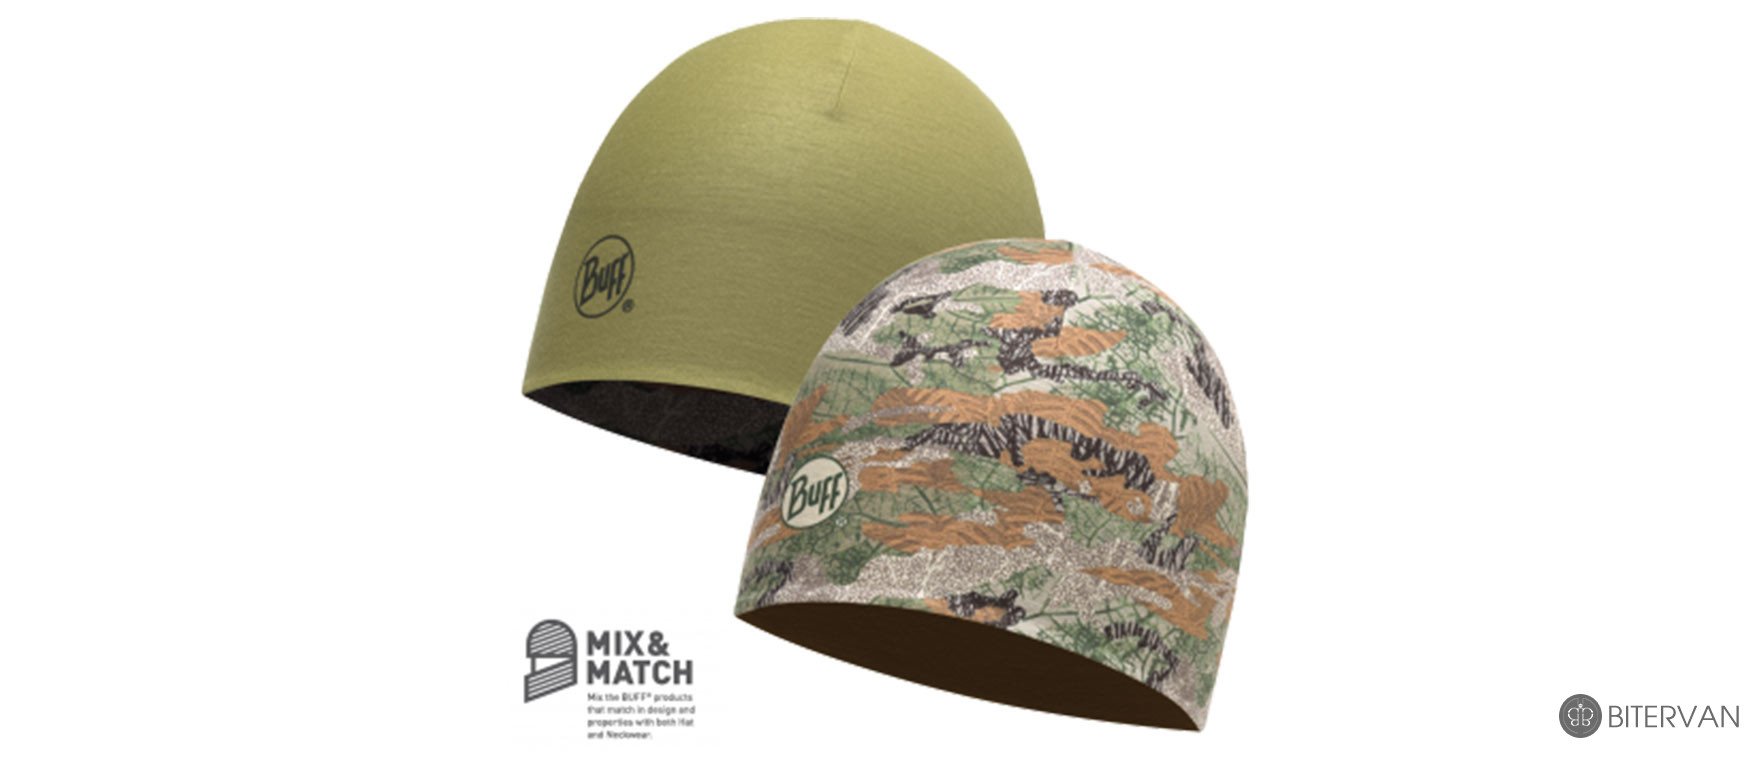 COOLMAX REVERSIBLE HAT BUFF® SAUVAGE BEECH - OLIVE